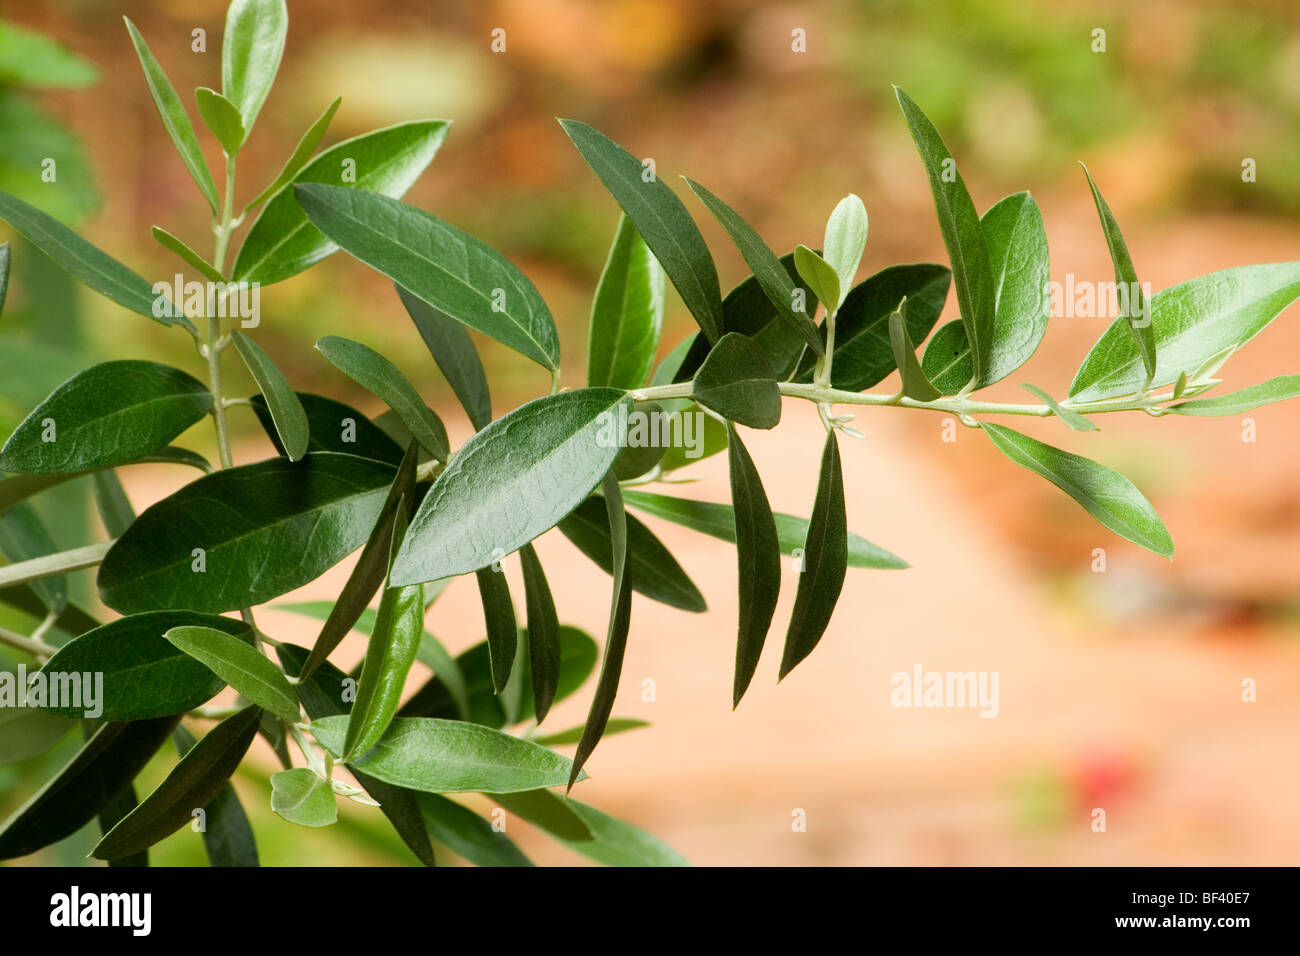 Olive Tree Leaves Close Up Stock Photo 26518415 Alamy